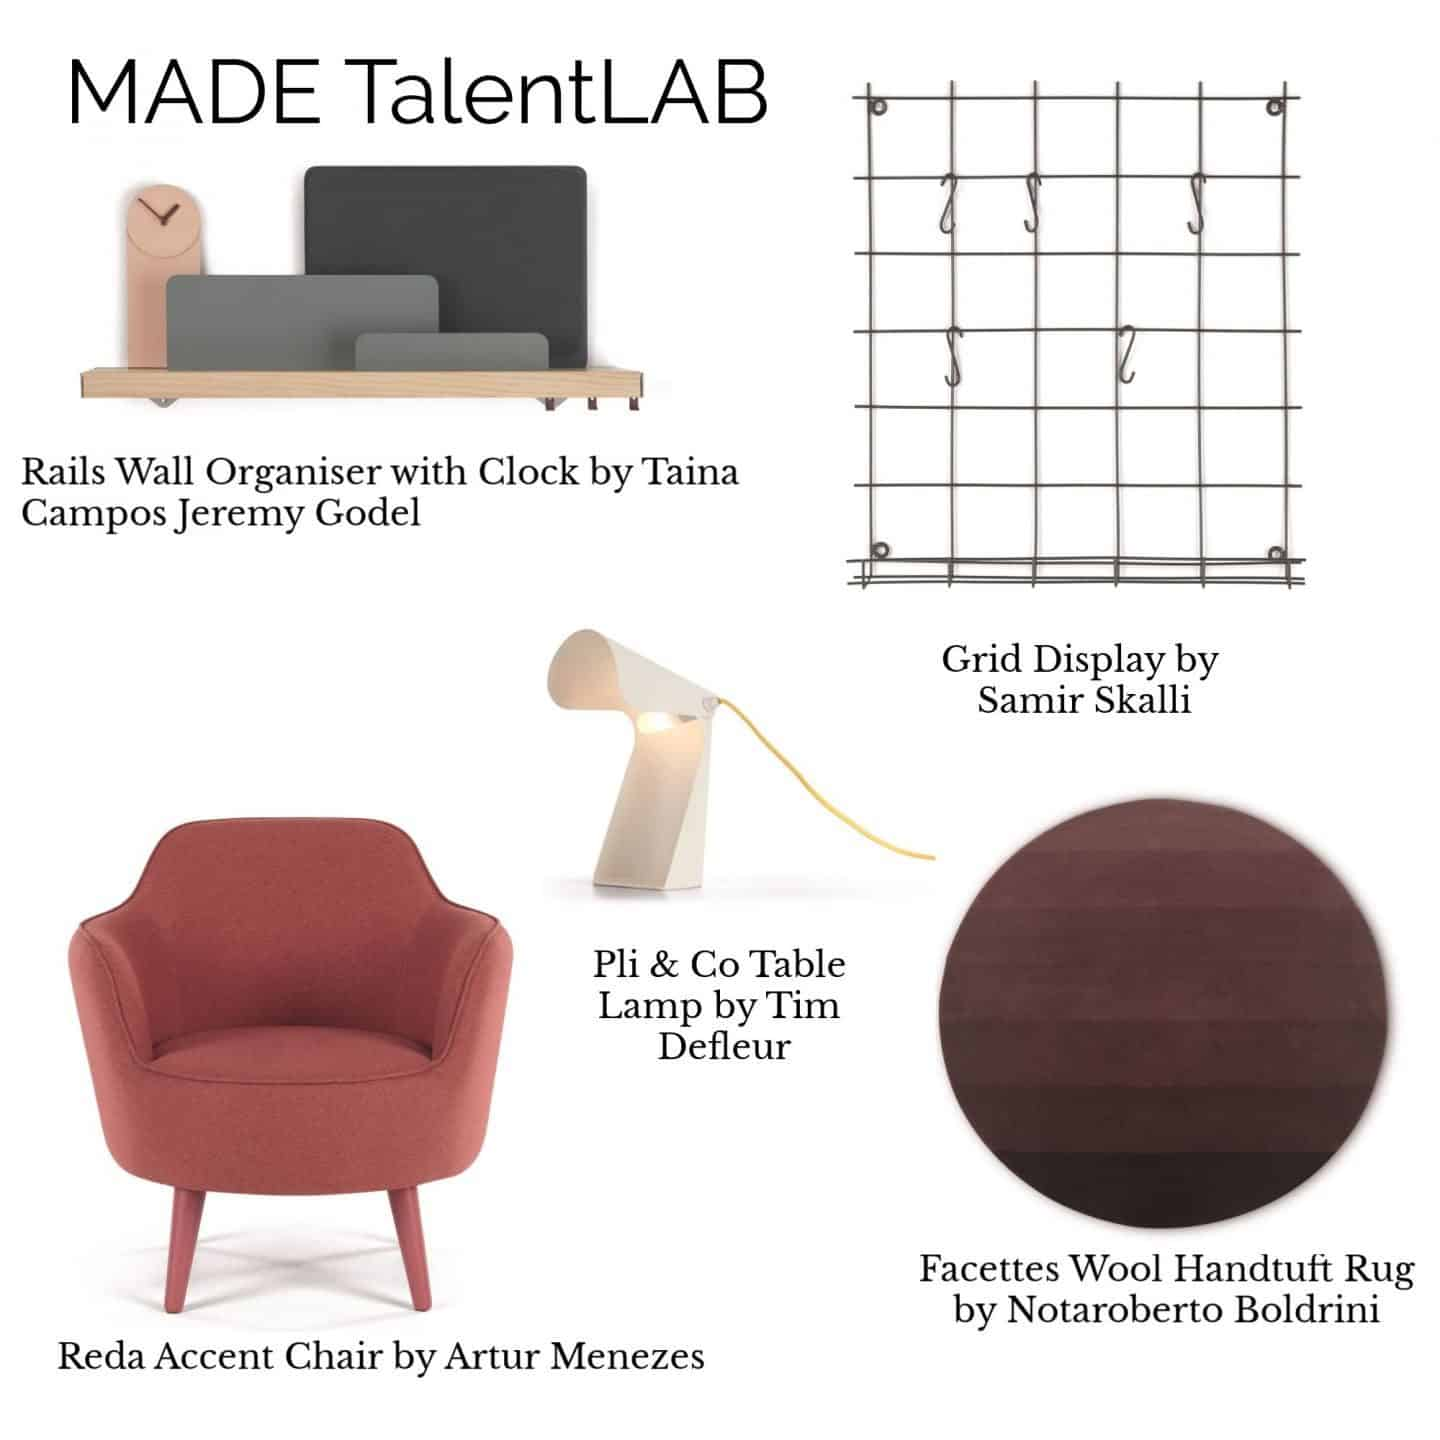 A collage of products from the MADE.COM TalentLAB Collection 2 featuring furniture, lighting, storage and a rug